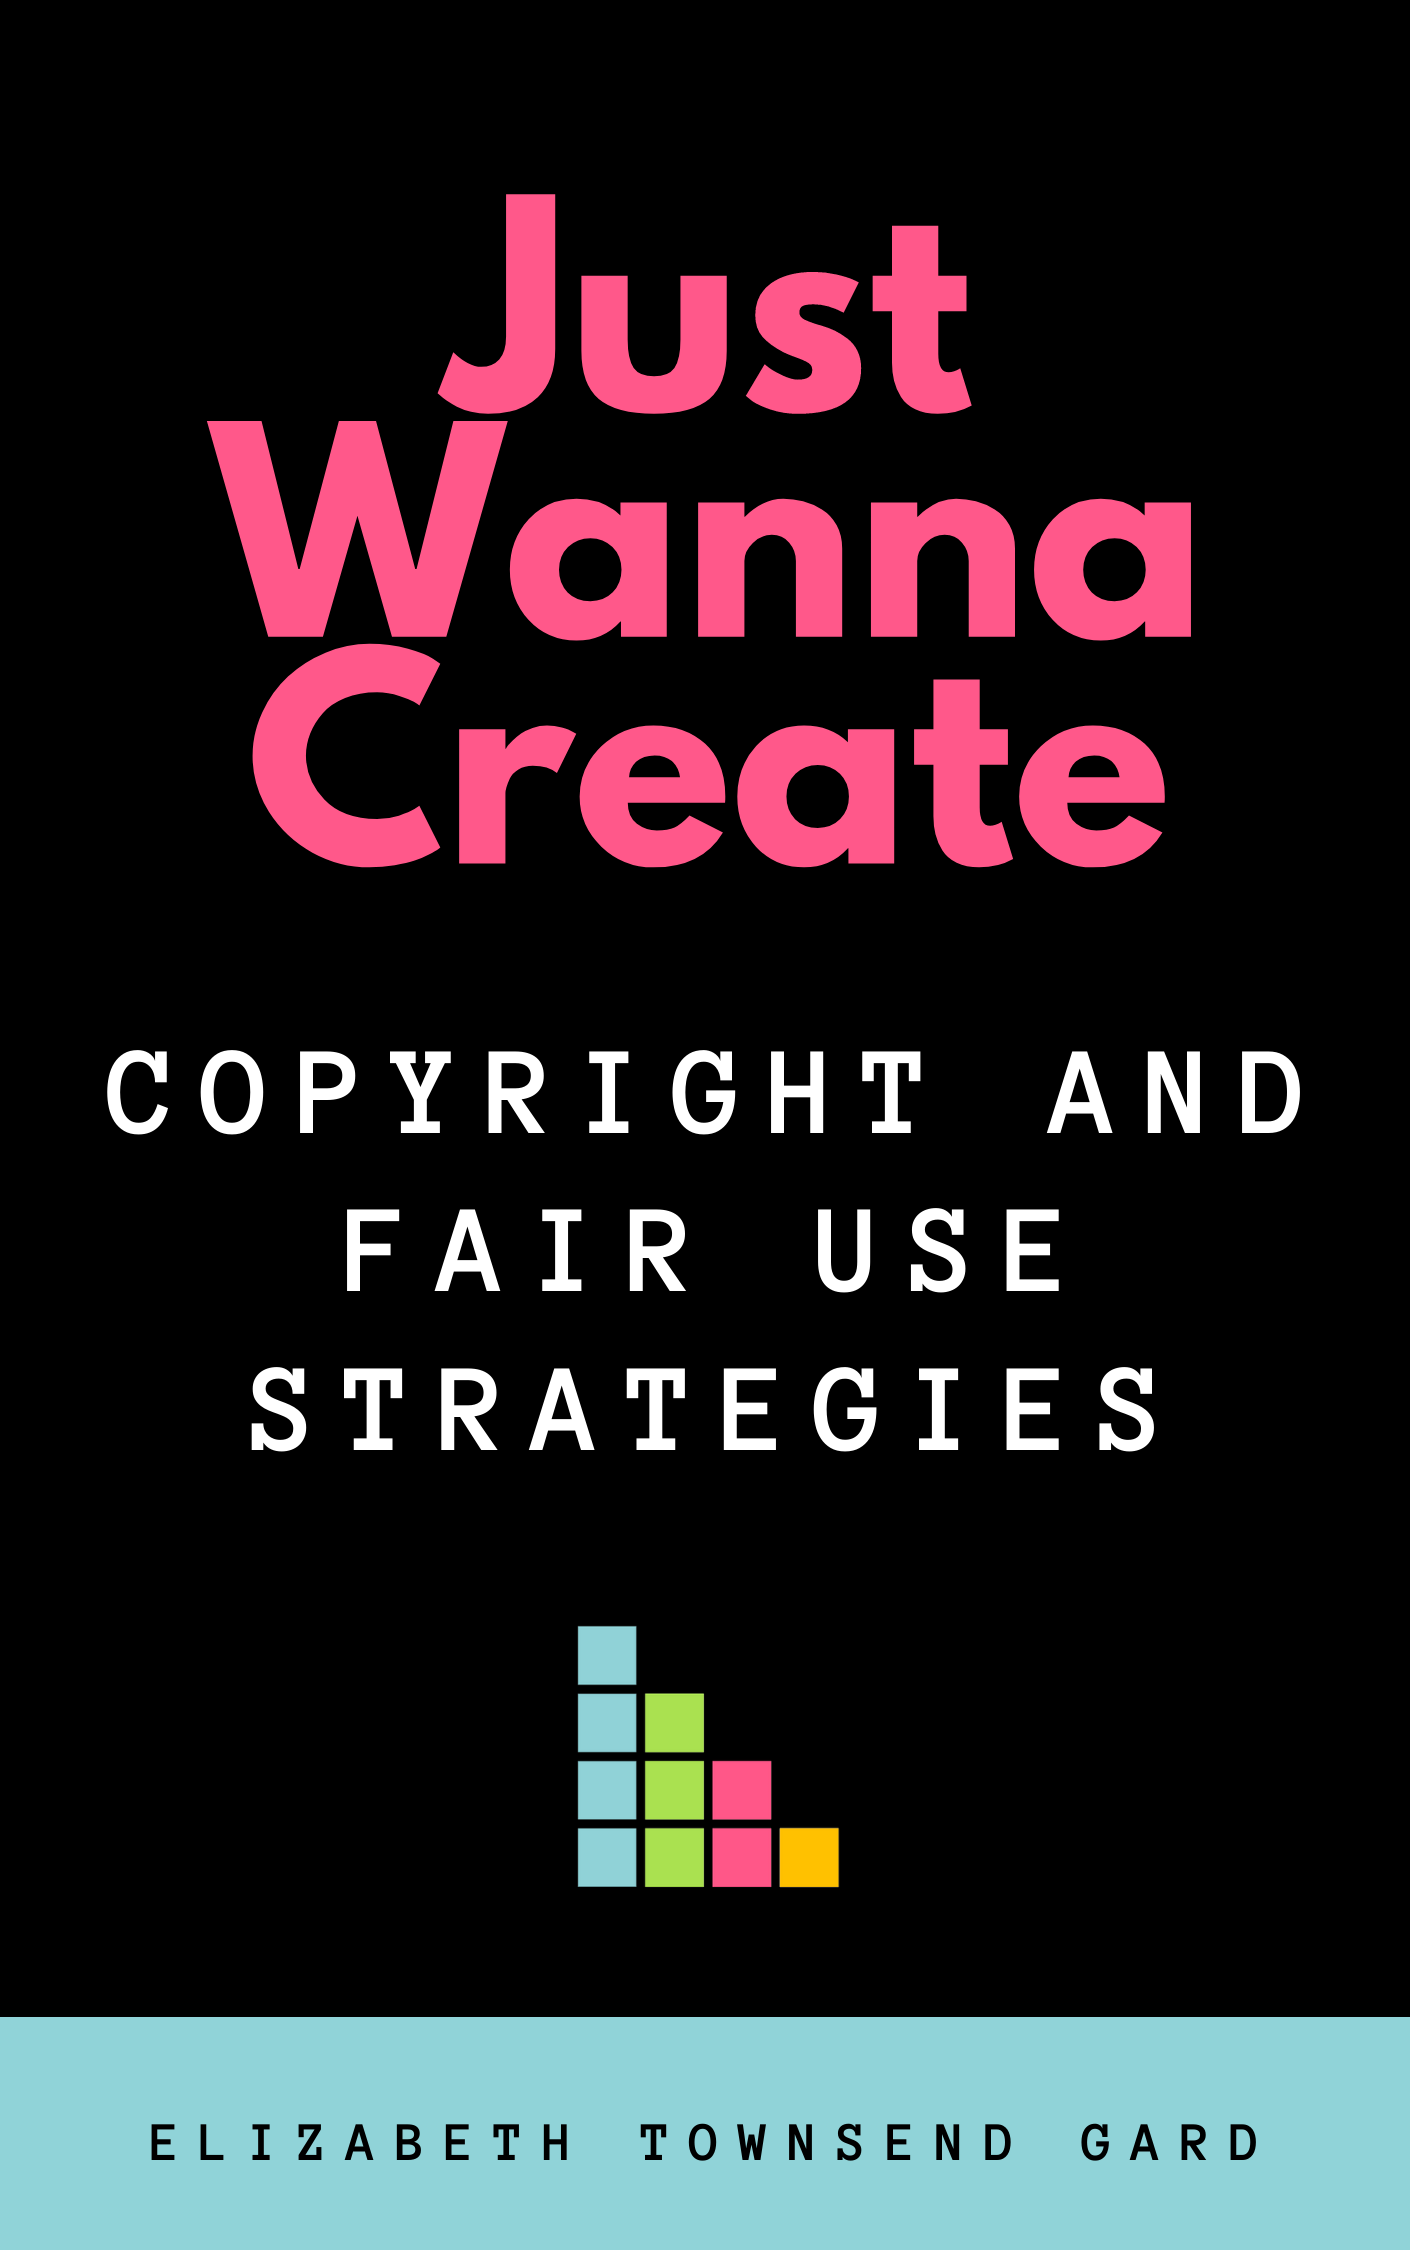 Image of Single Book: Just Wanna Create: Copyright and Fair Use Strategies (Pre-order for January 1)